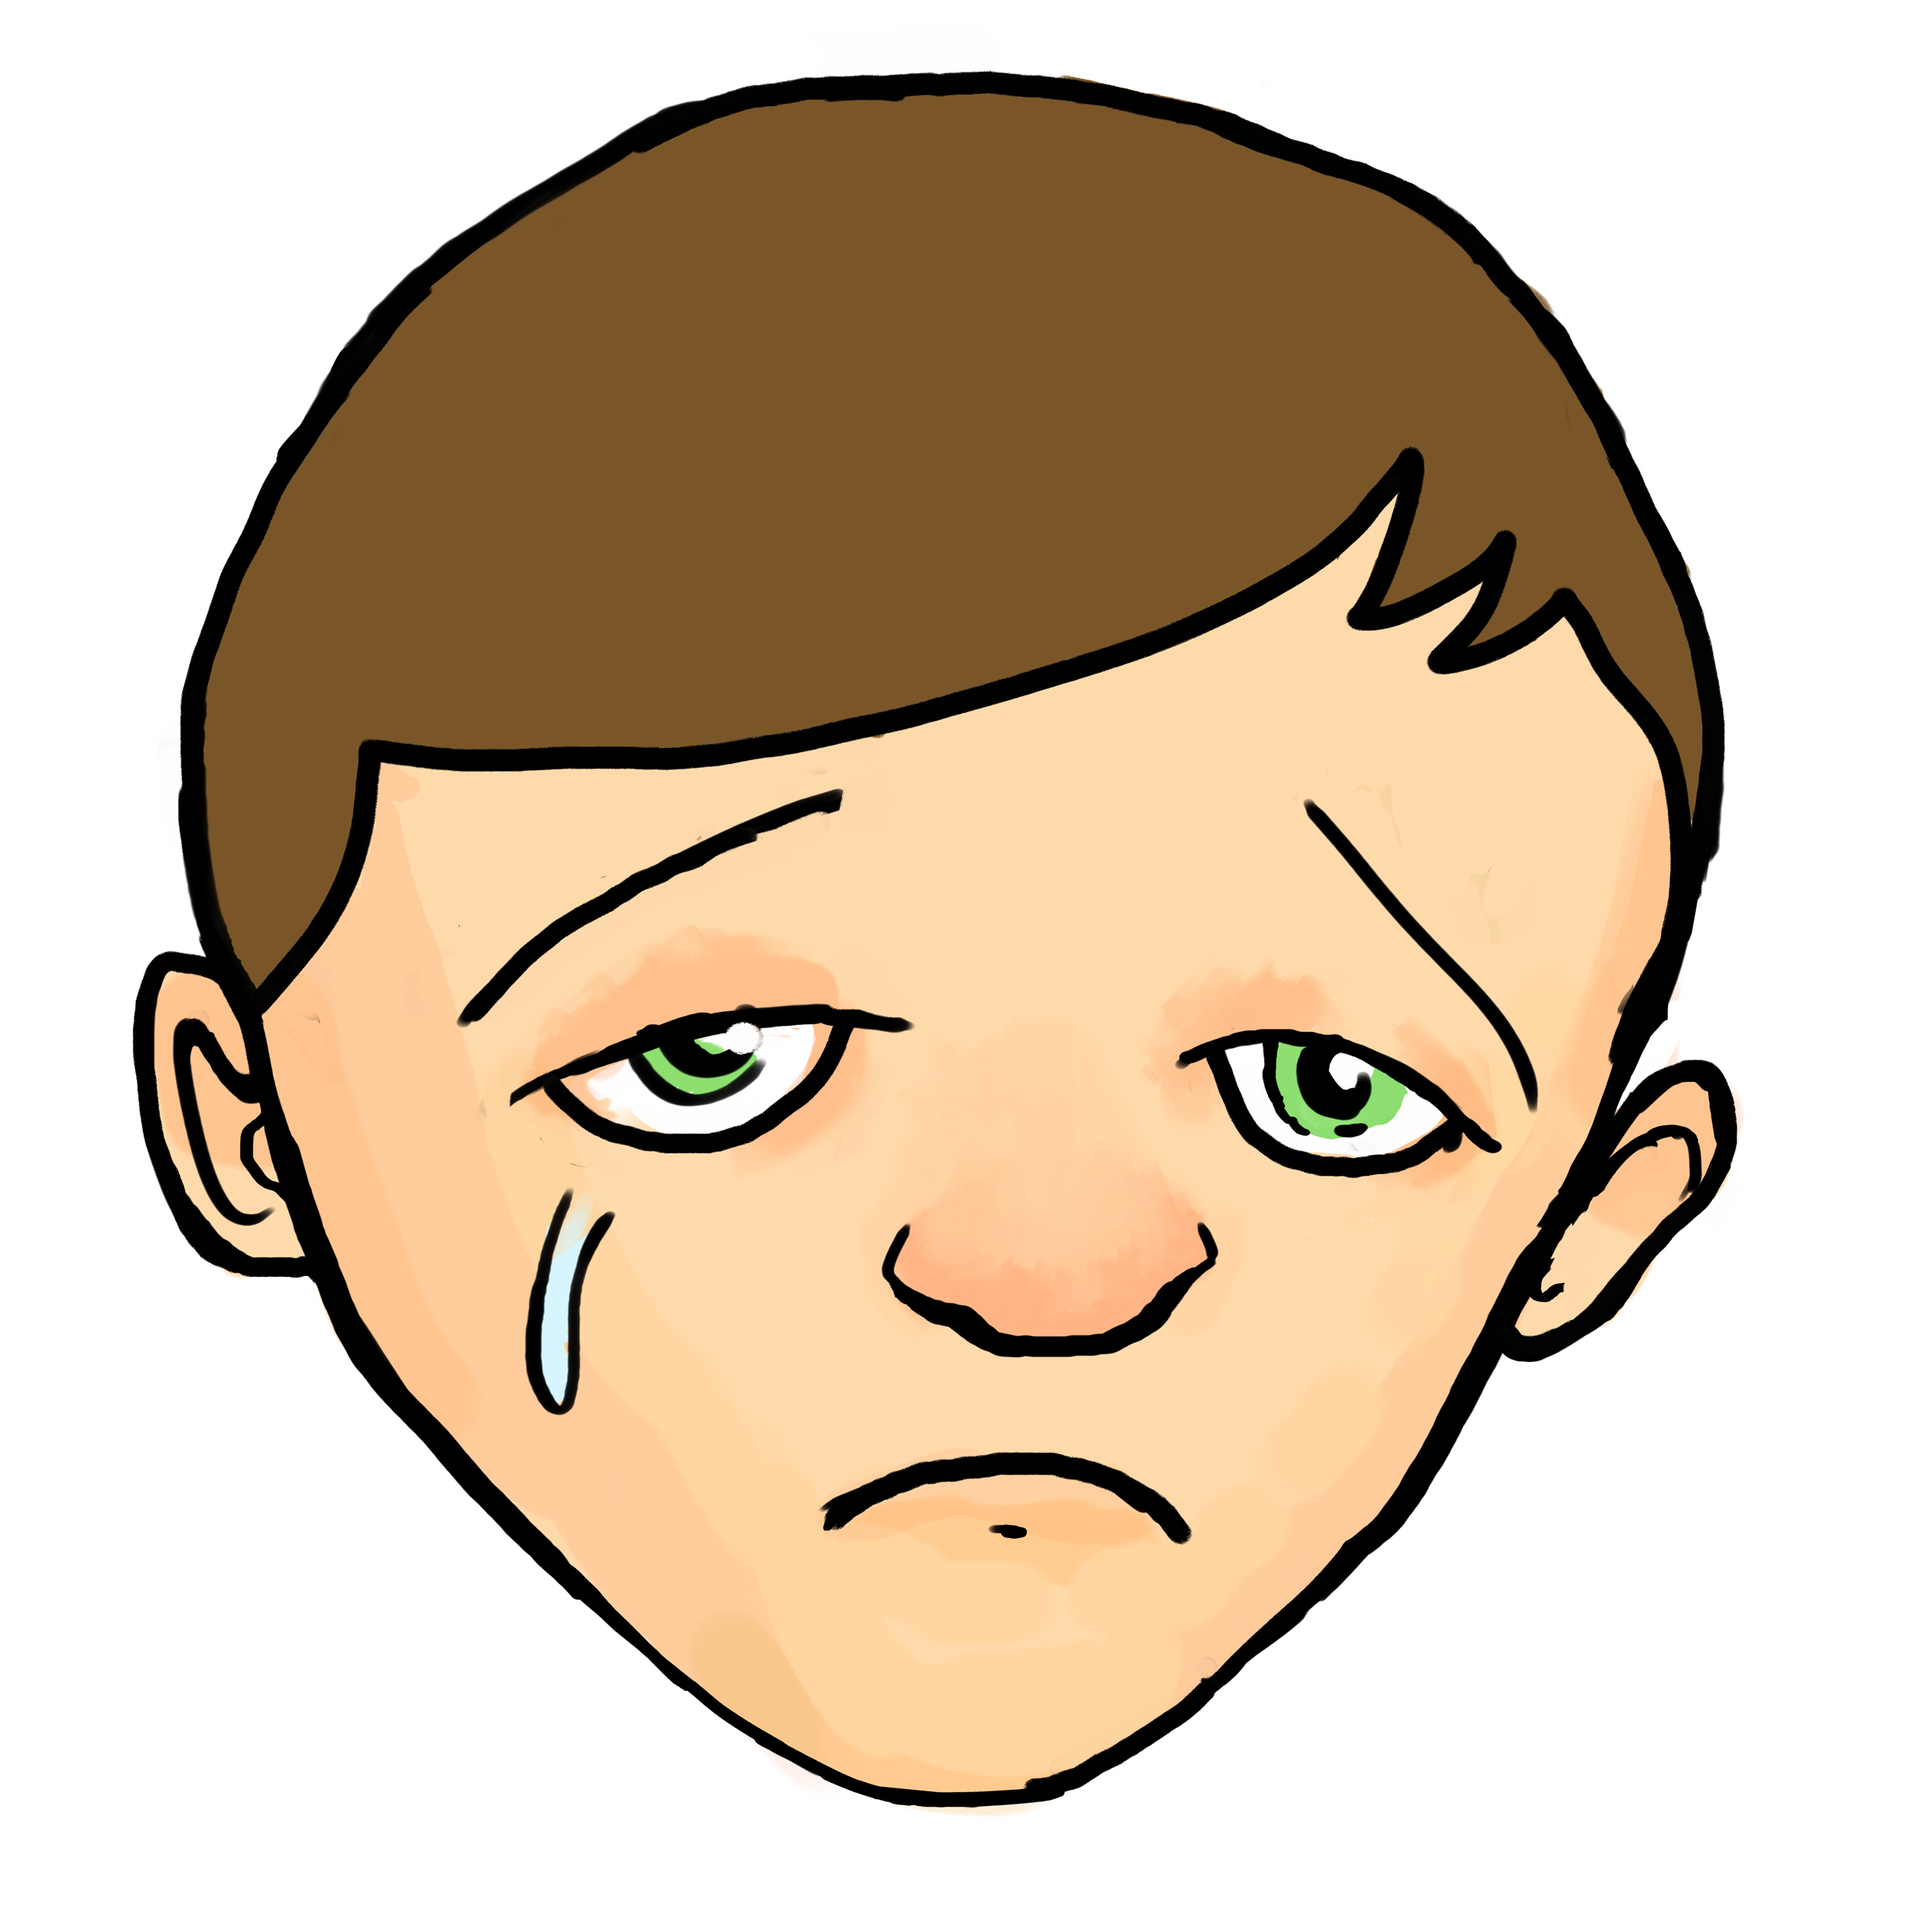 Sad face crying clipart 2